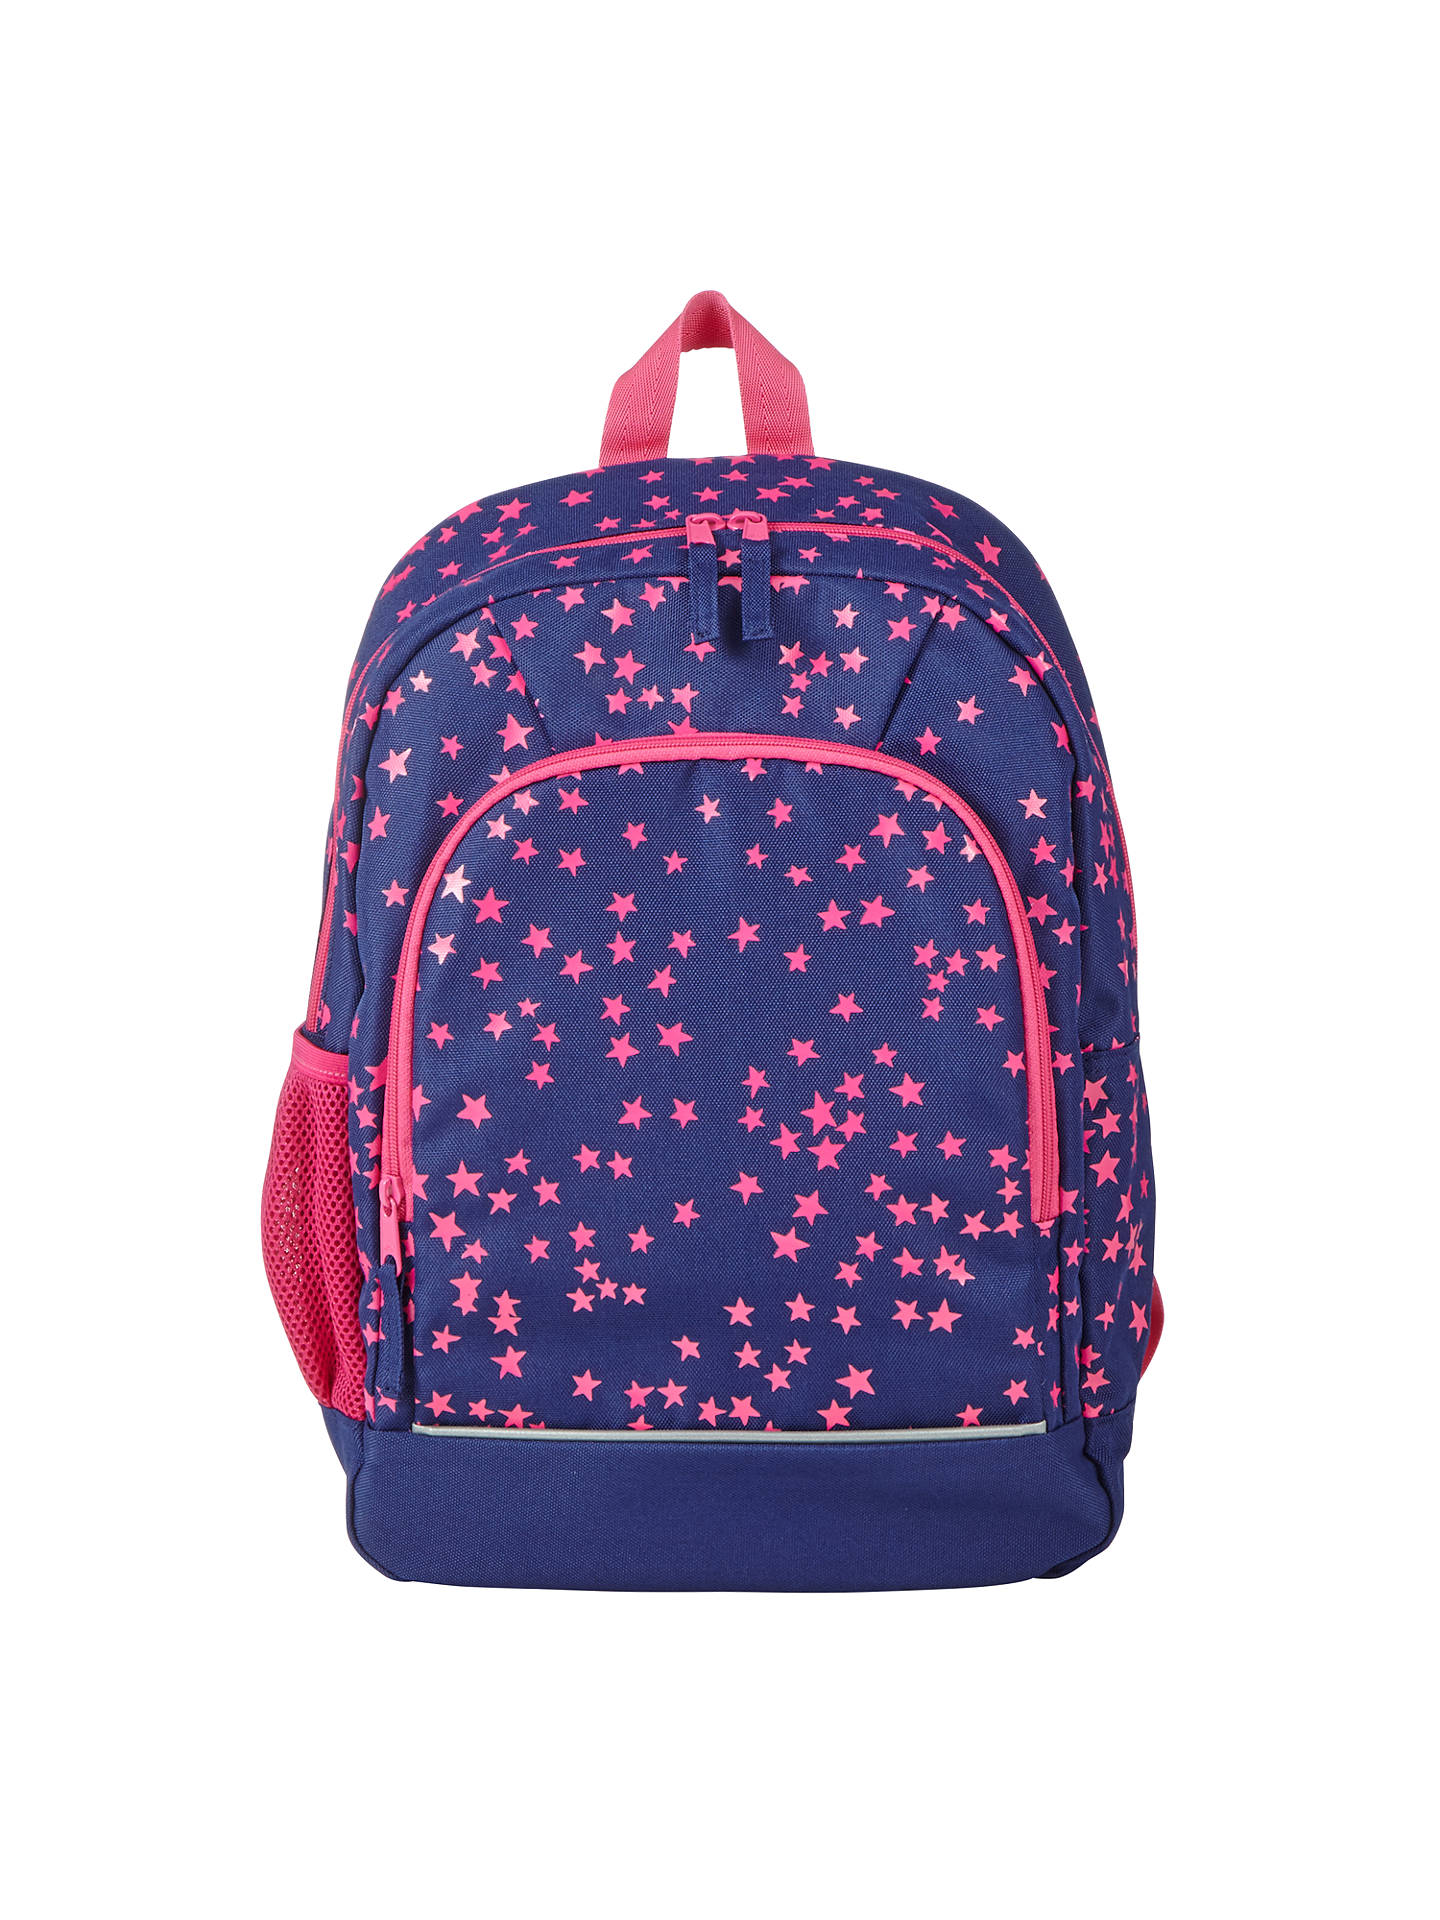 BuyJohn Lewis Children s Star Print School Backpack 0f74c99c34479